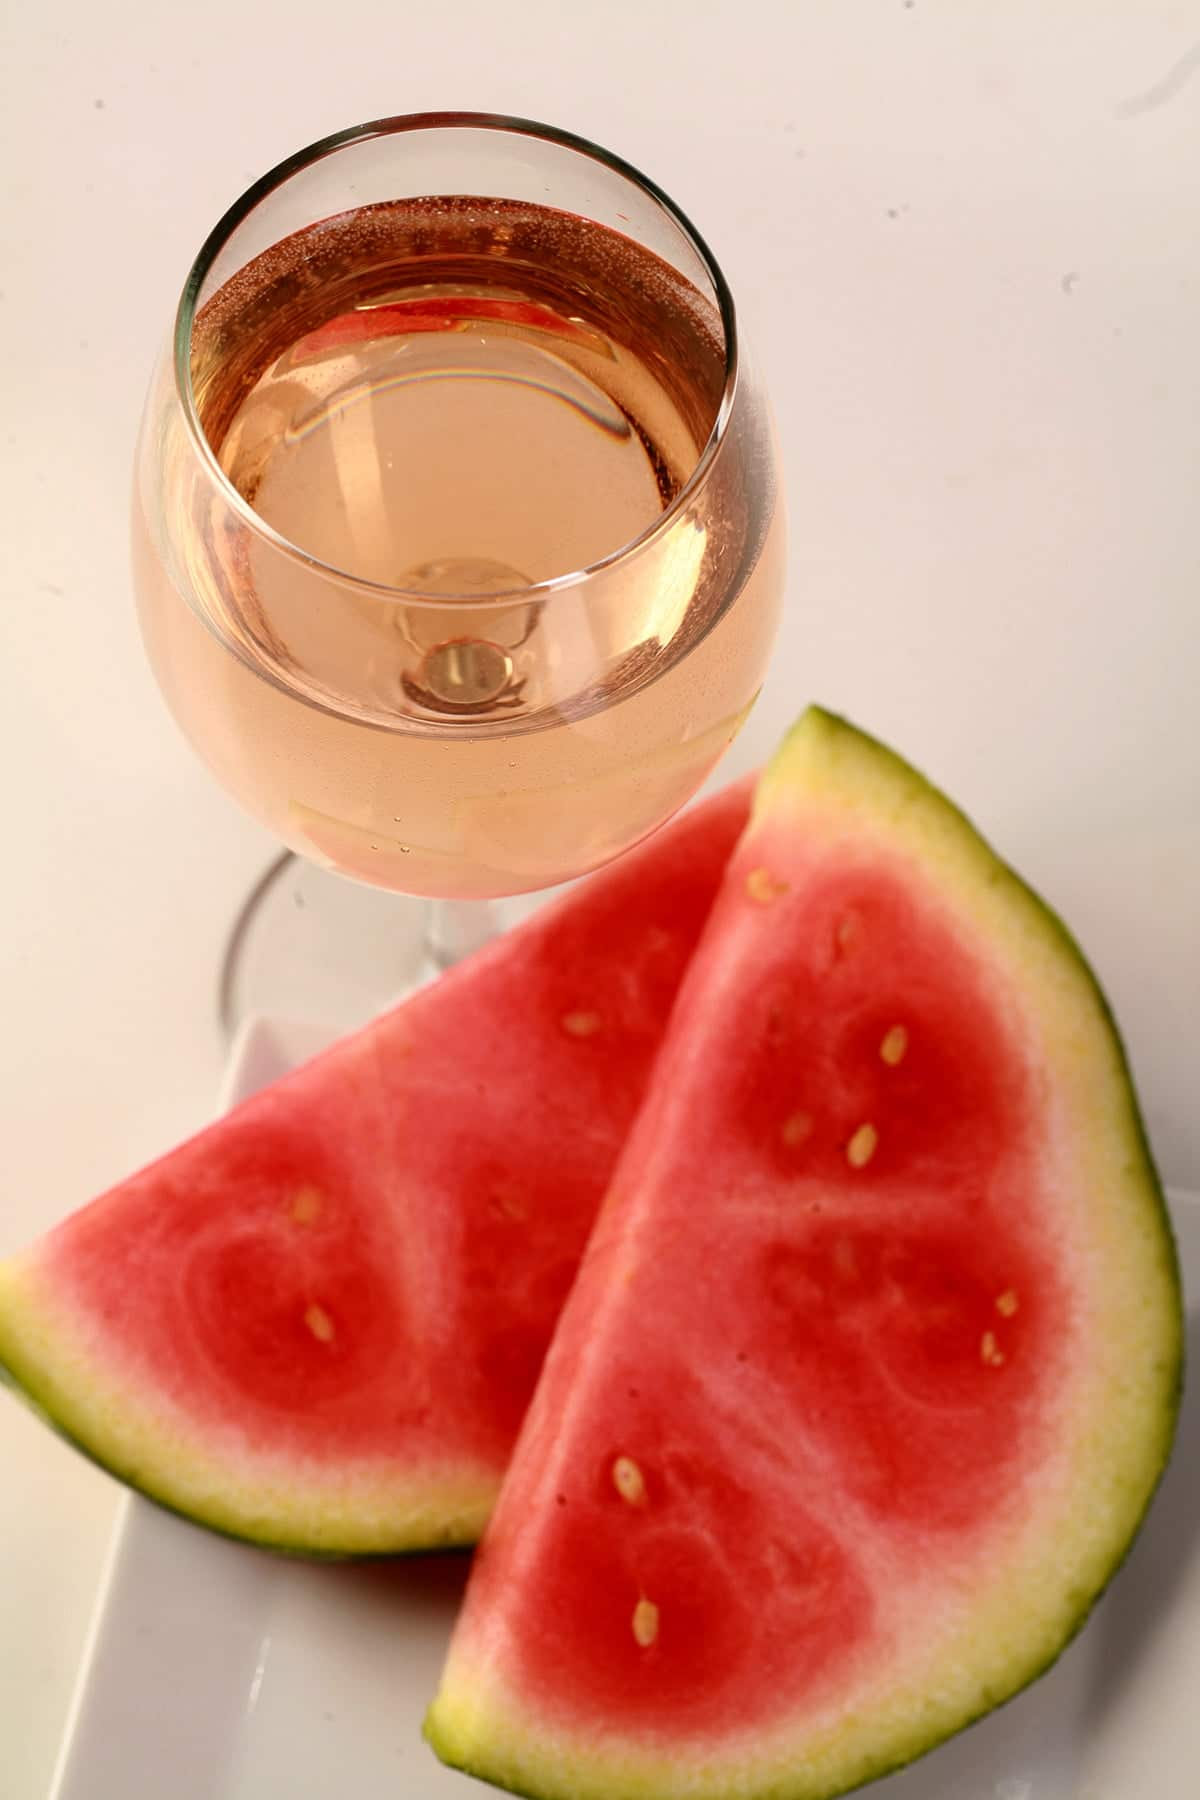 A glass of pale pink watermelon wine, next to a white plate with watermelon slices on it.